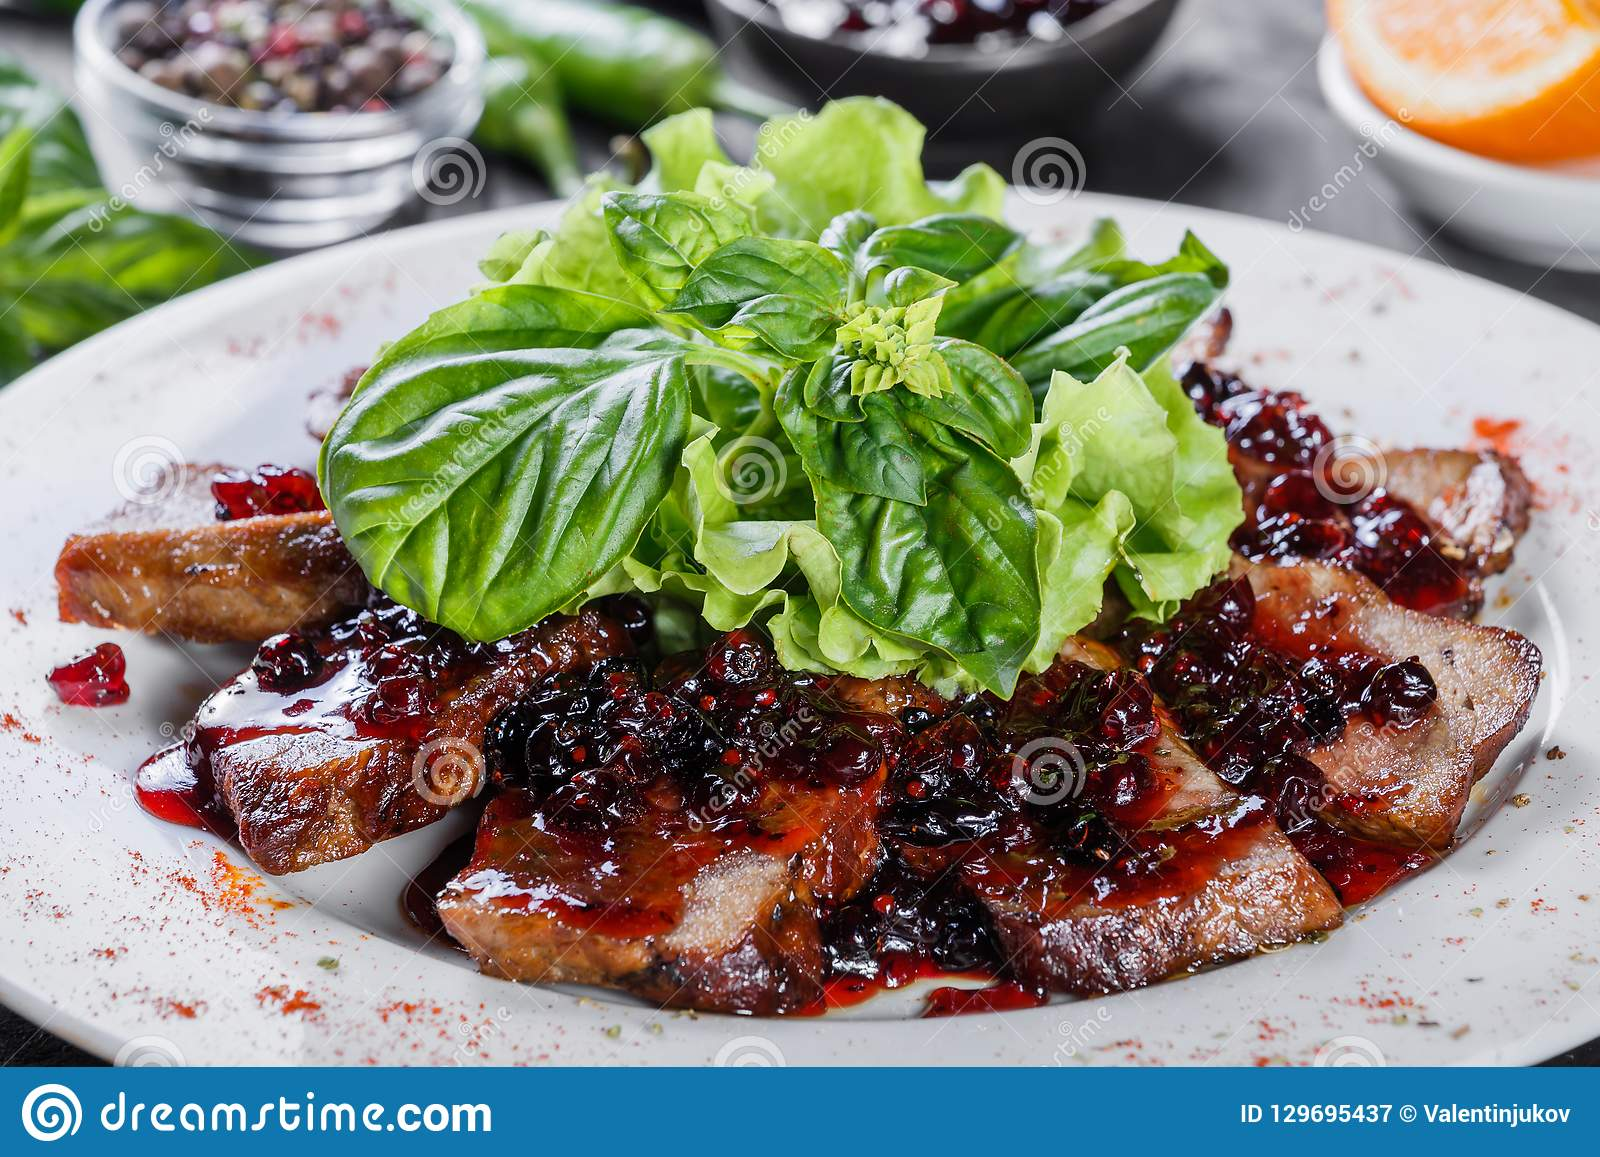 Fried beef meat with wild berries sauce on plate on wooden background.